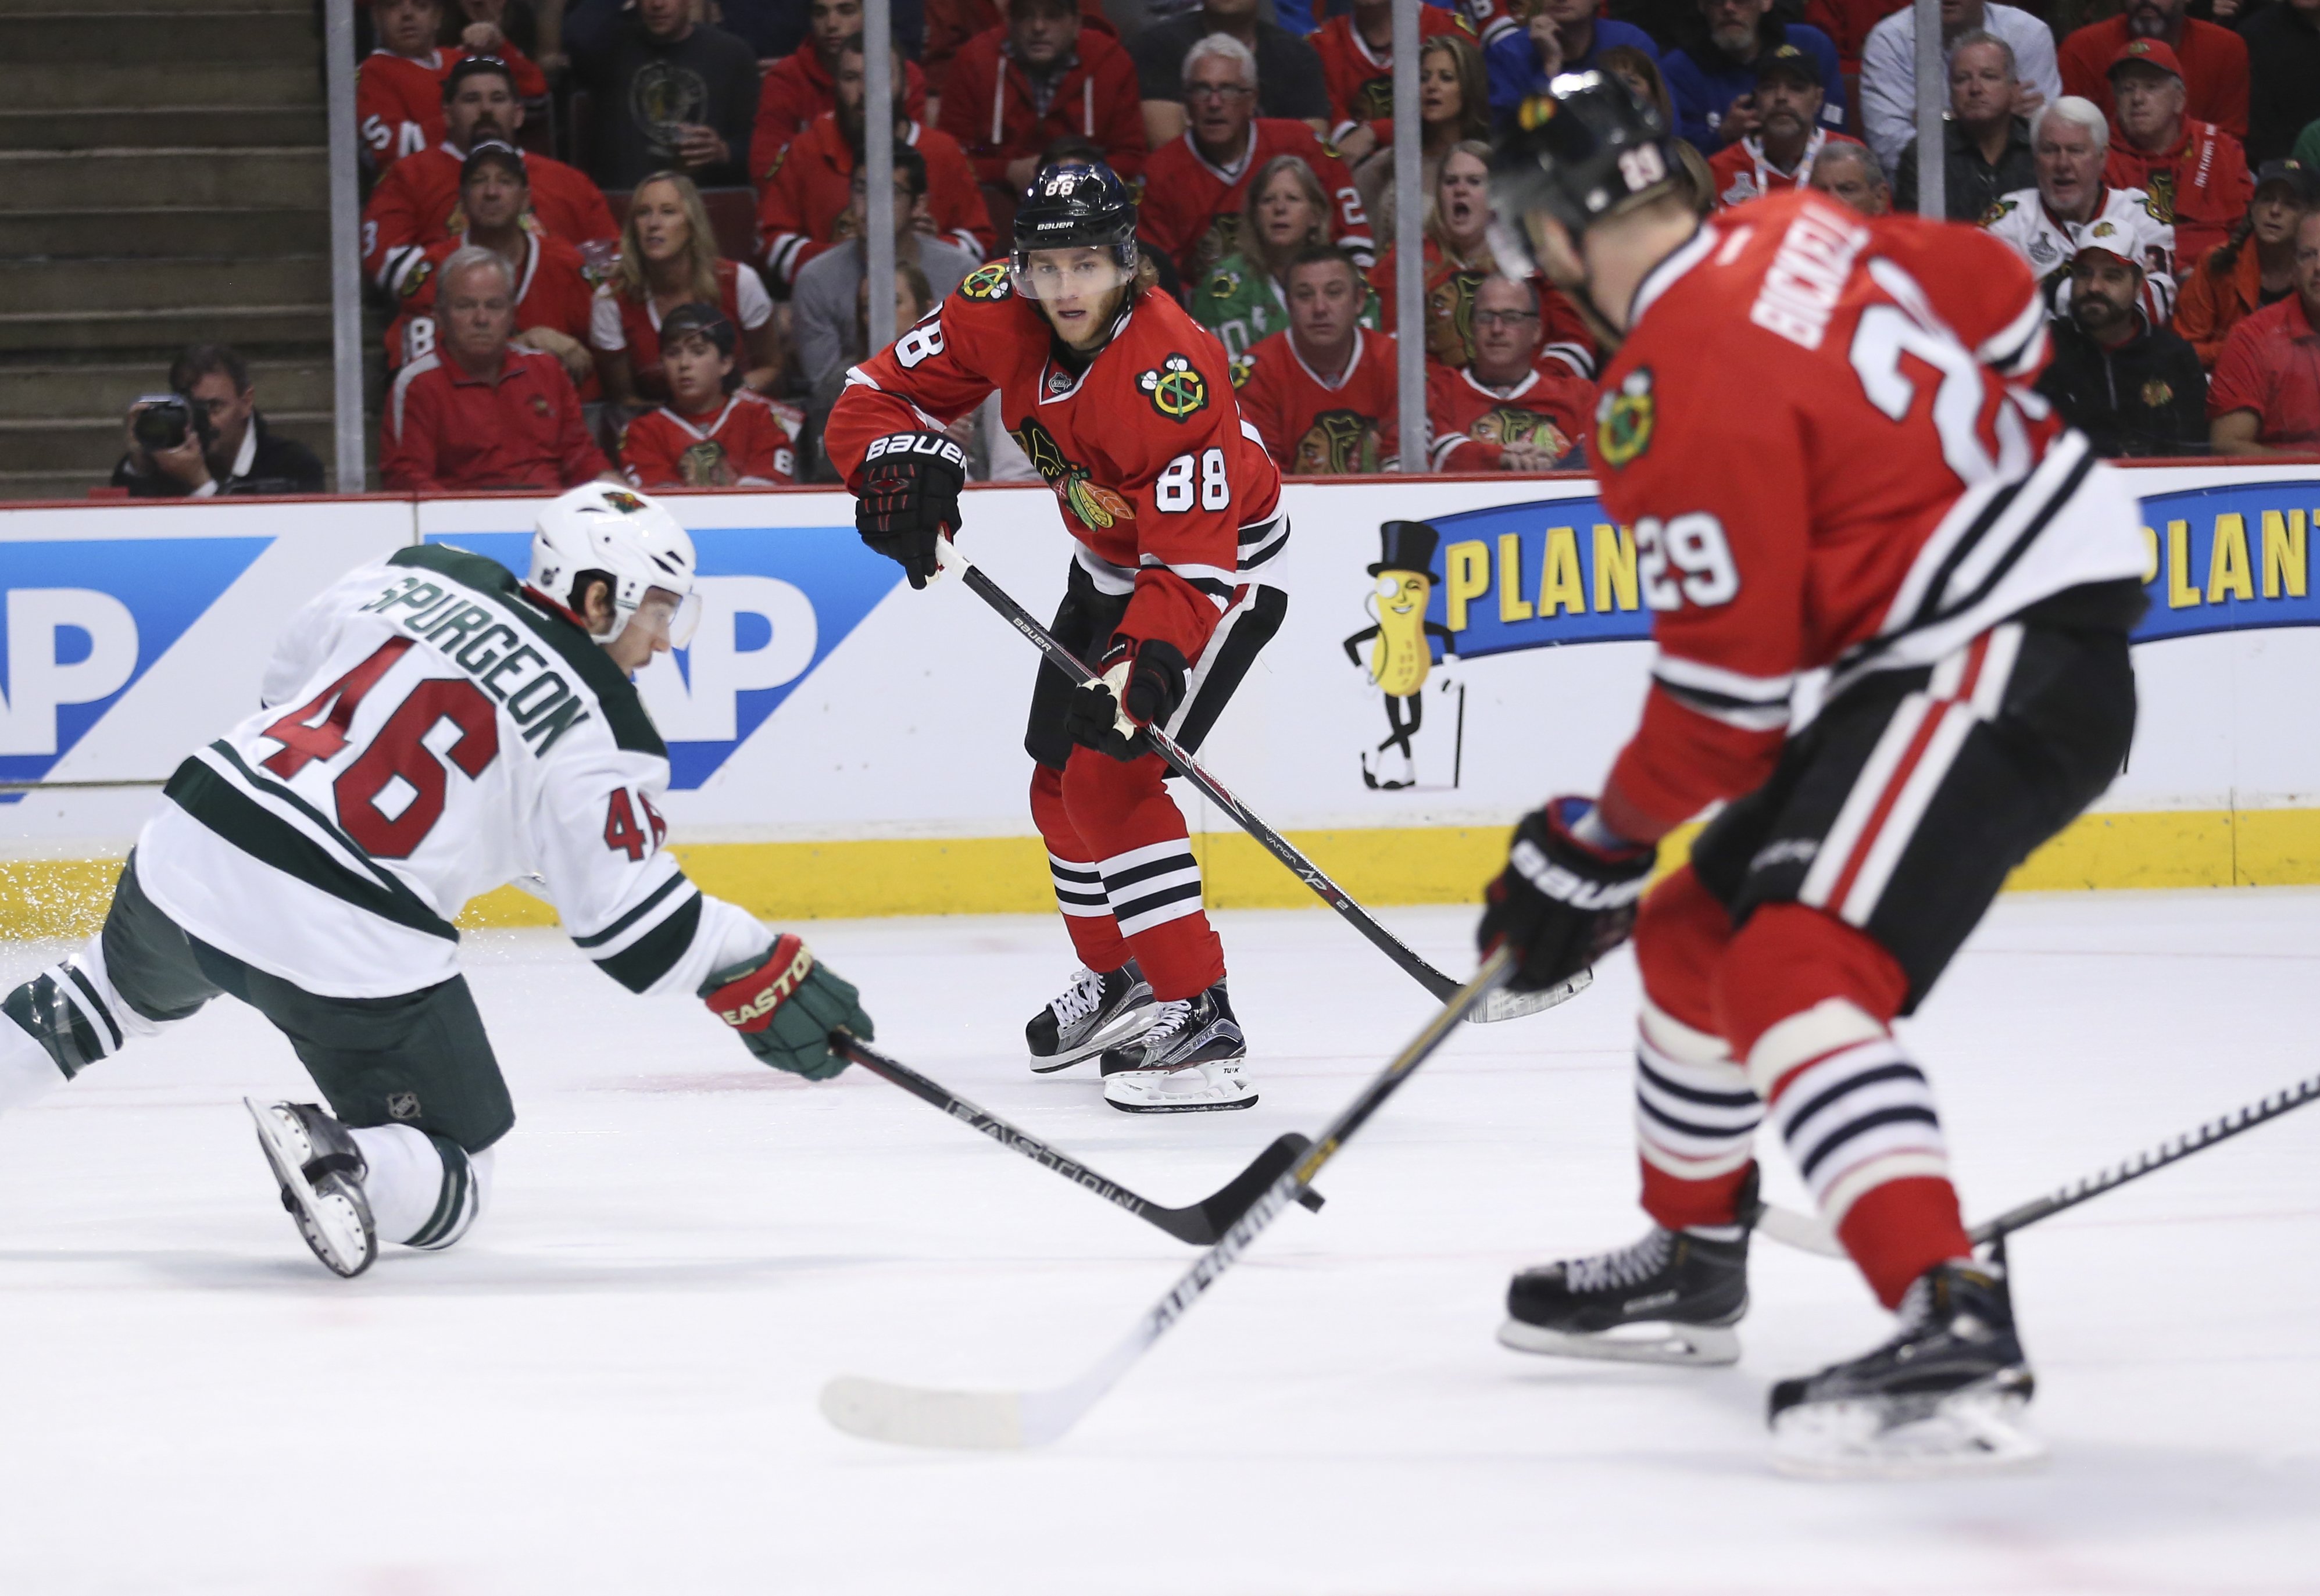 Wild defenseman Jared Spurgeon (46) gets his stick on a pass from Blackhawks right wing Patrick Kane (88) during the second round. Chicago advanced to the conference final by winning that series.